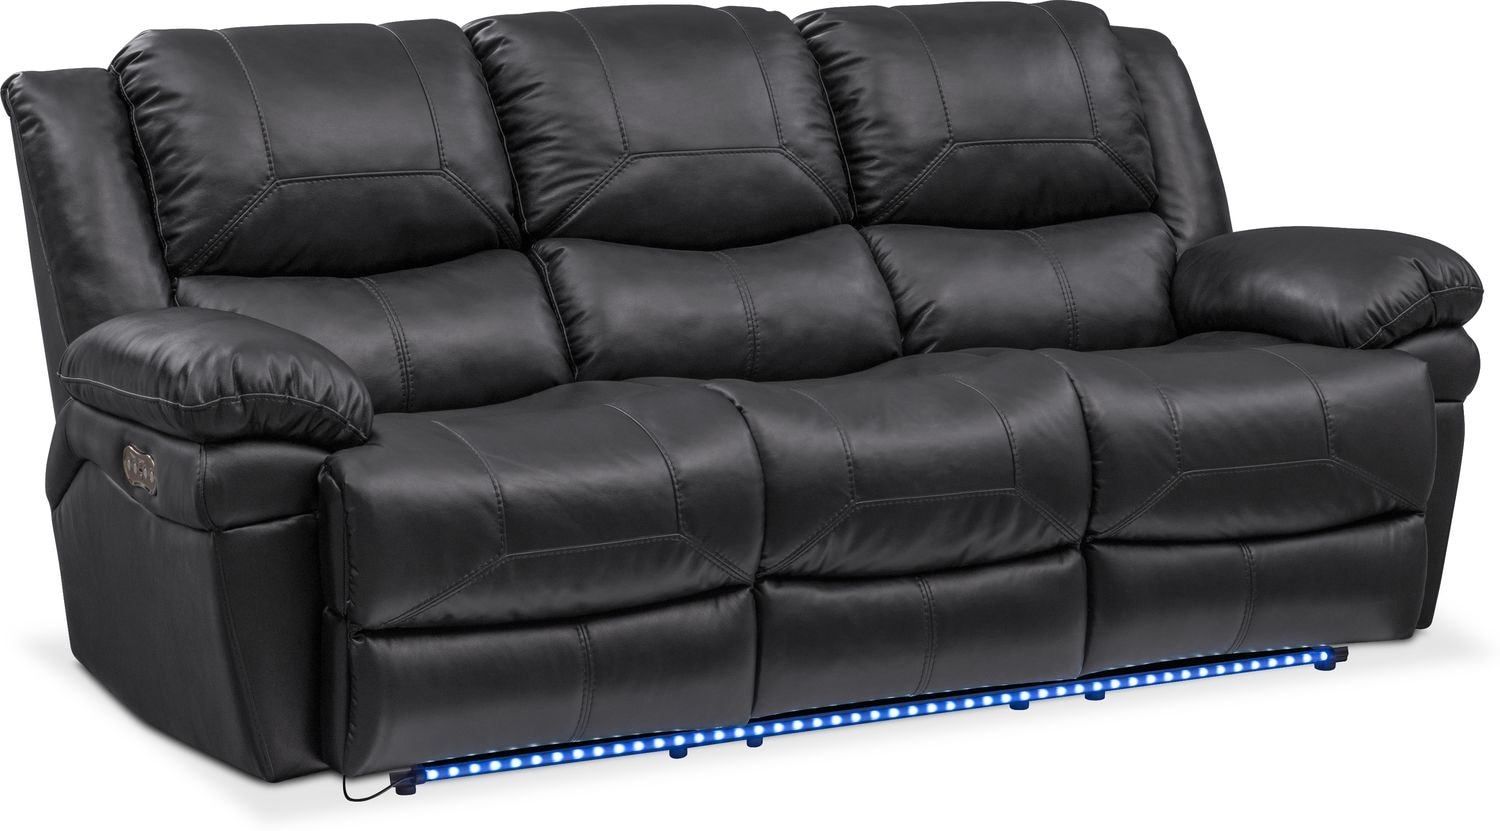 Living Room Furniture - Monza Dual-Power Reclining Sofa